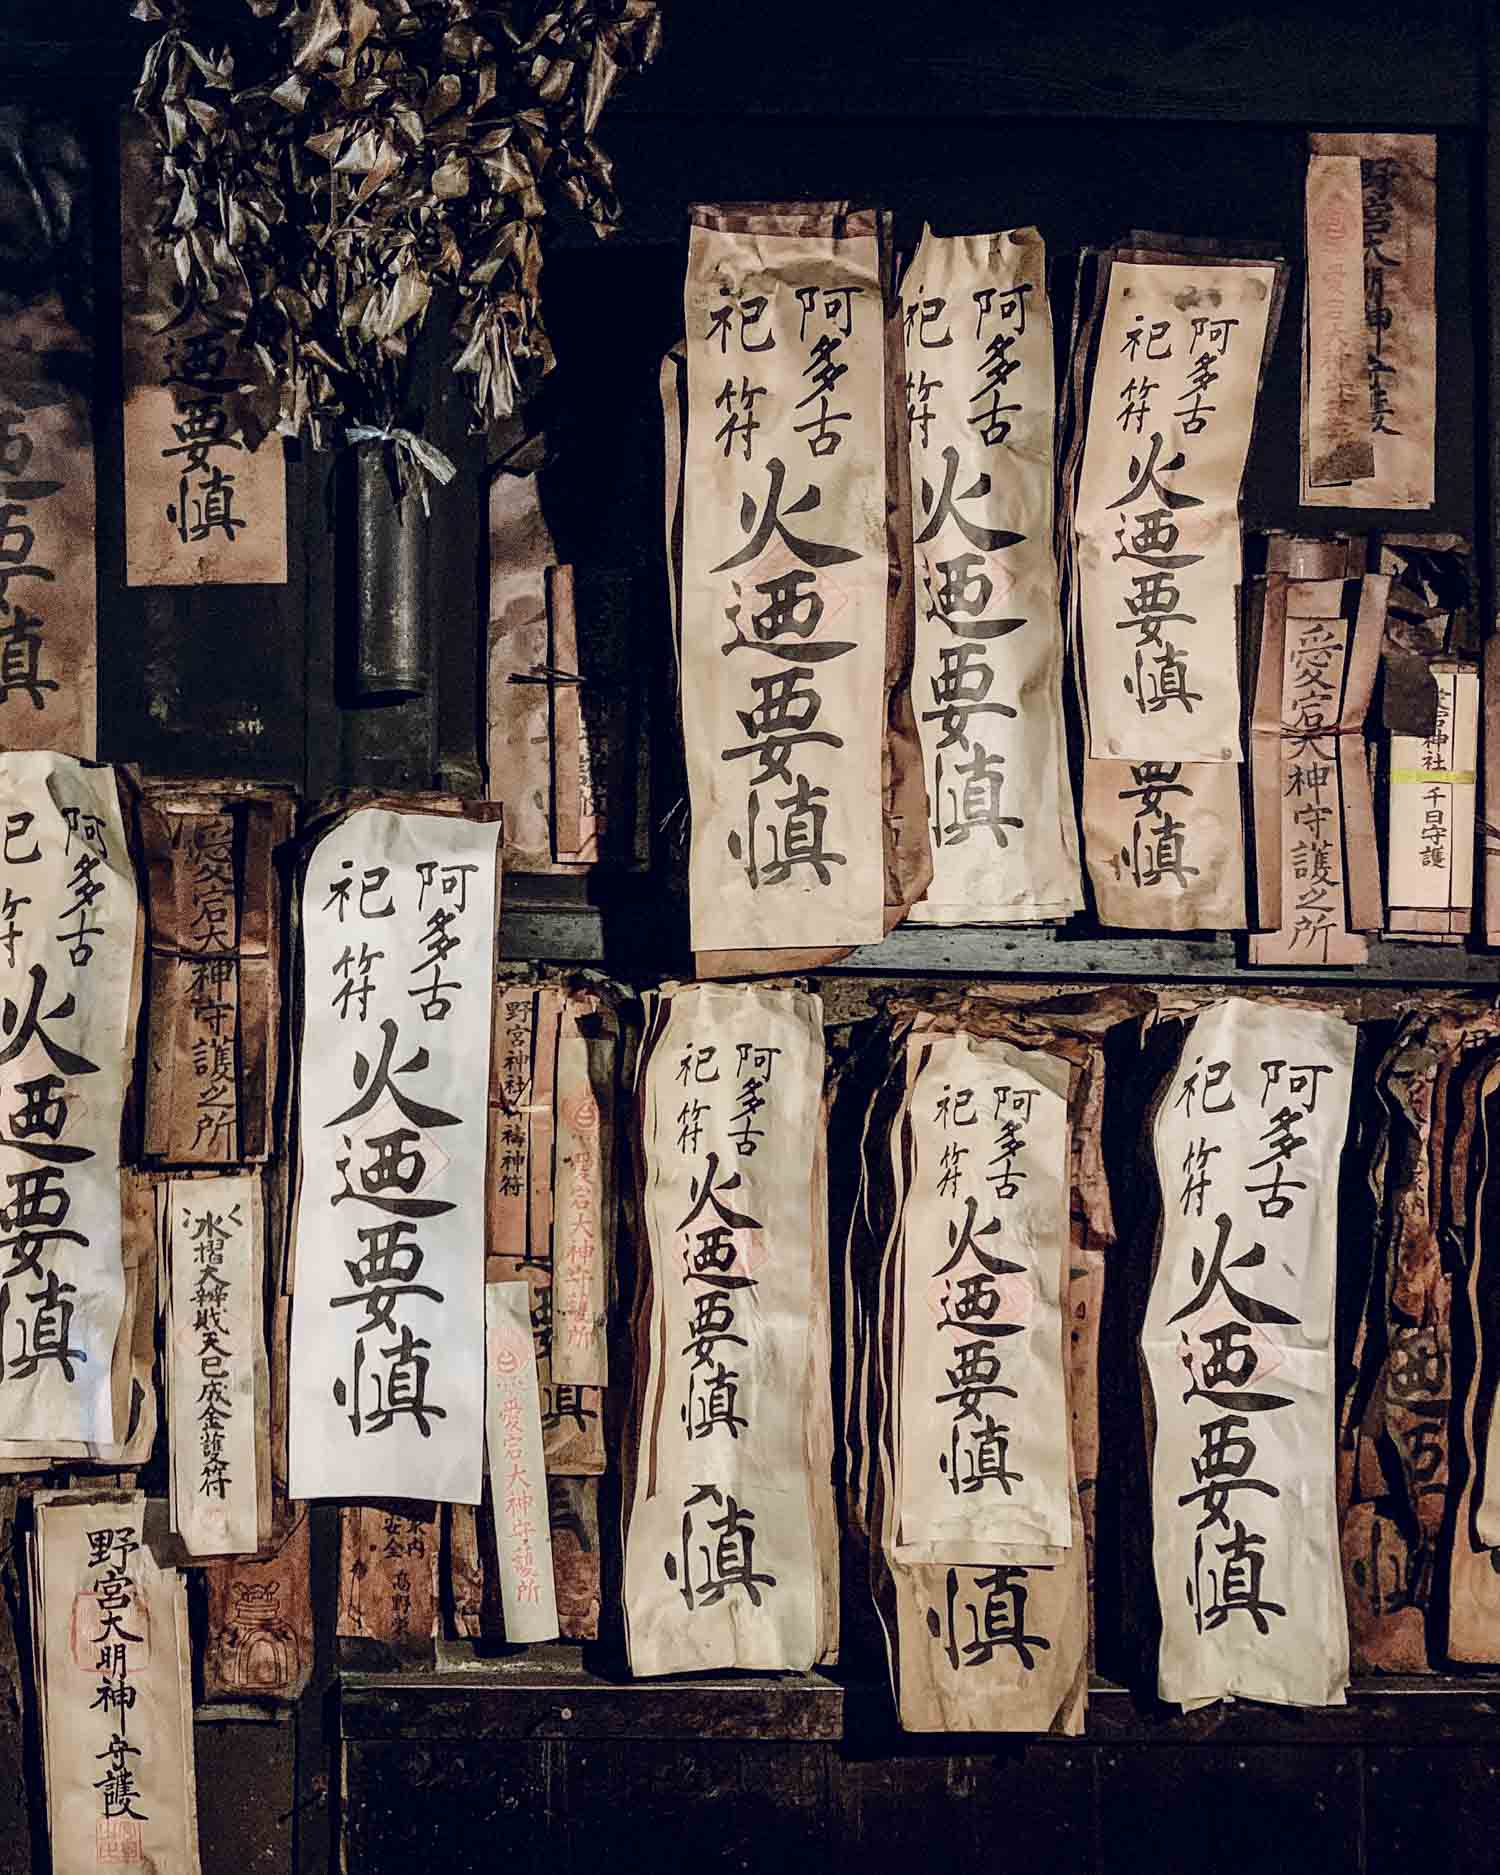 signs up in an ancient Japanese restaurant